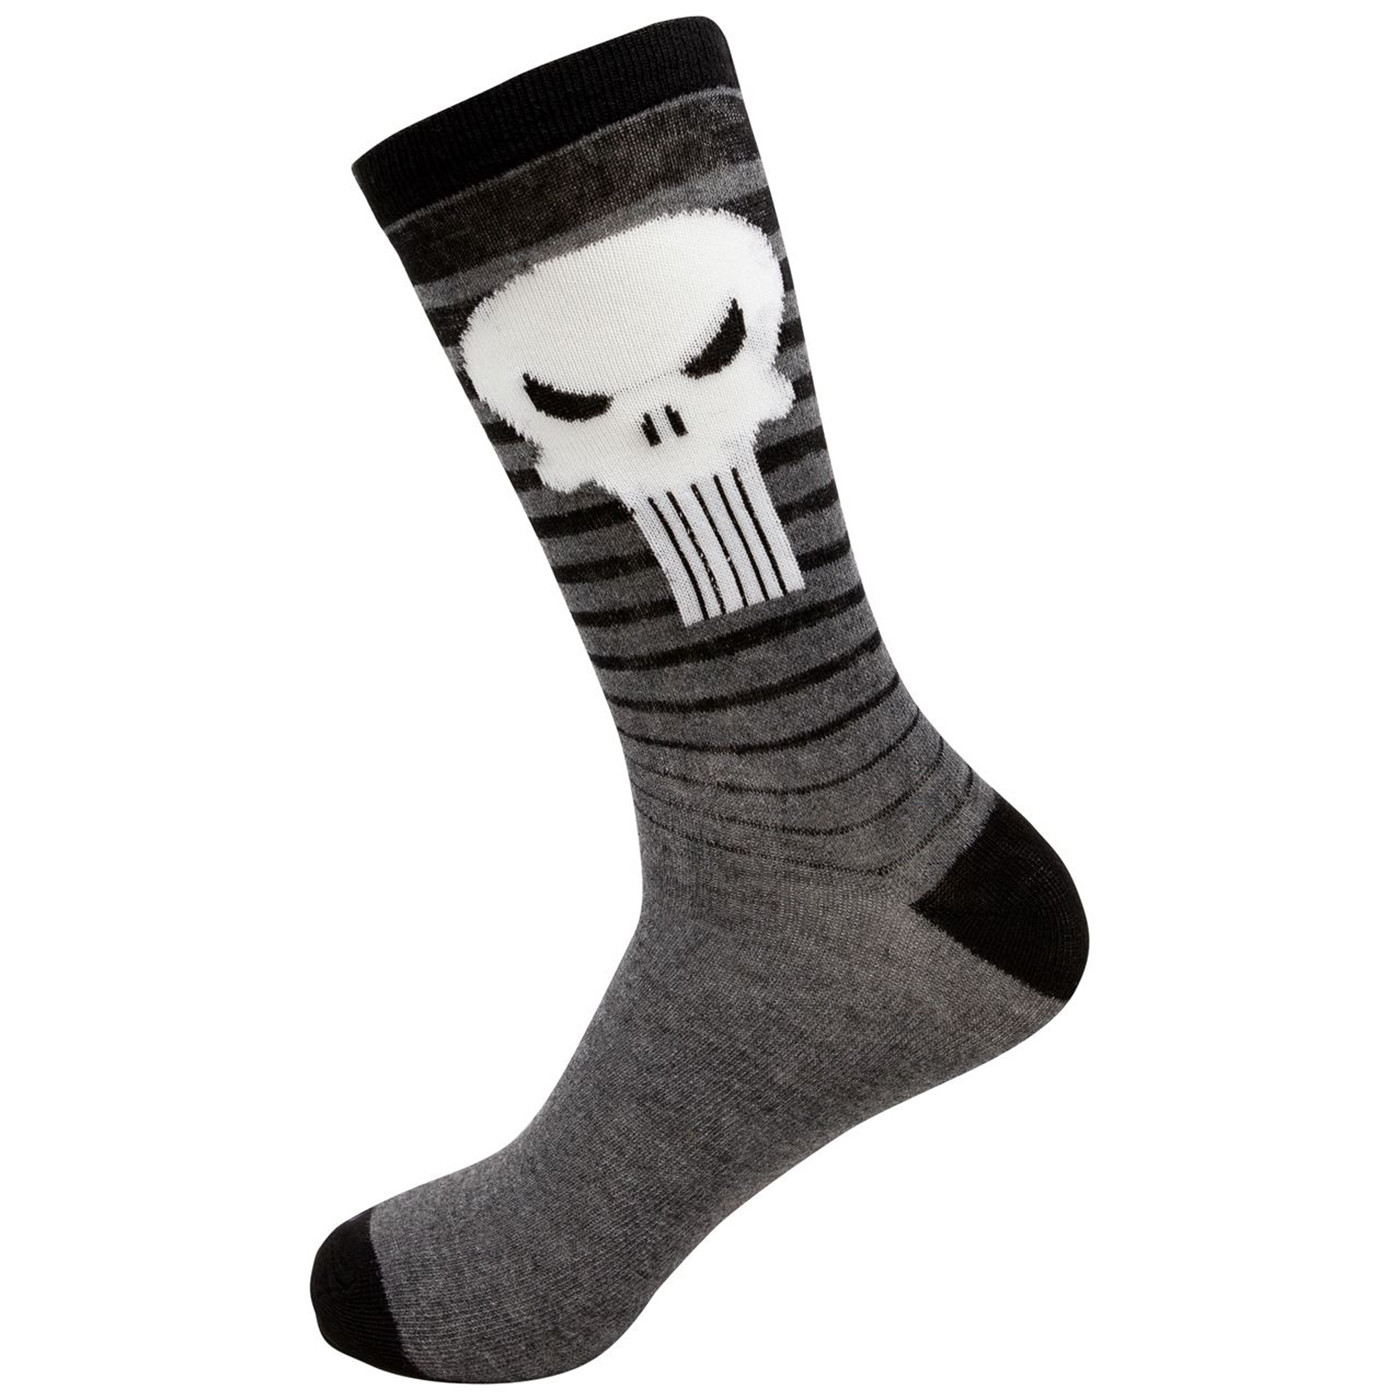 Punisher Gradient and Symbols and Sights Men's 2-Pack Crew Socks